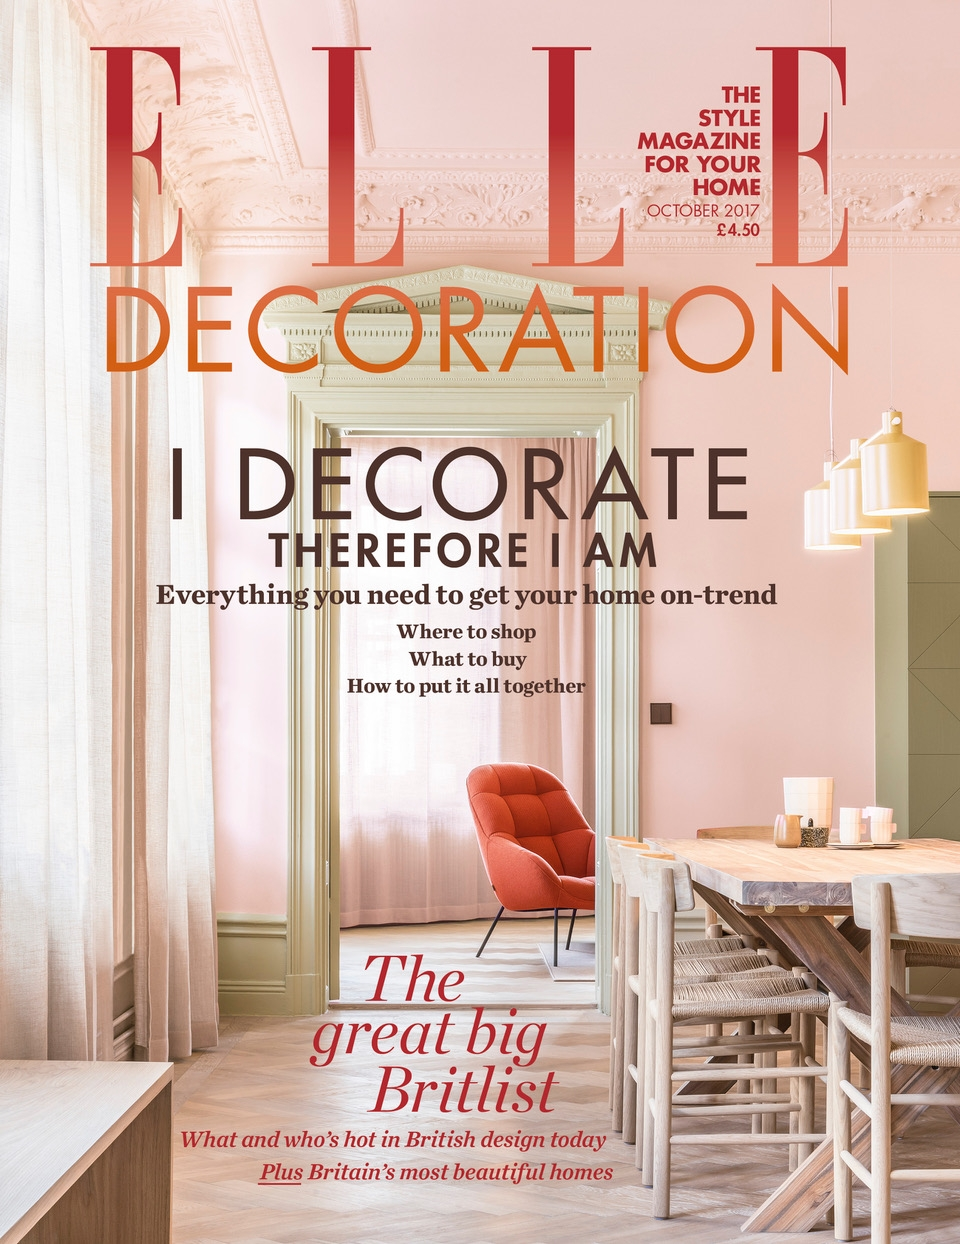 >> Elle Decoration Oct 2017